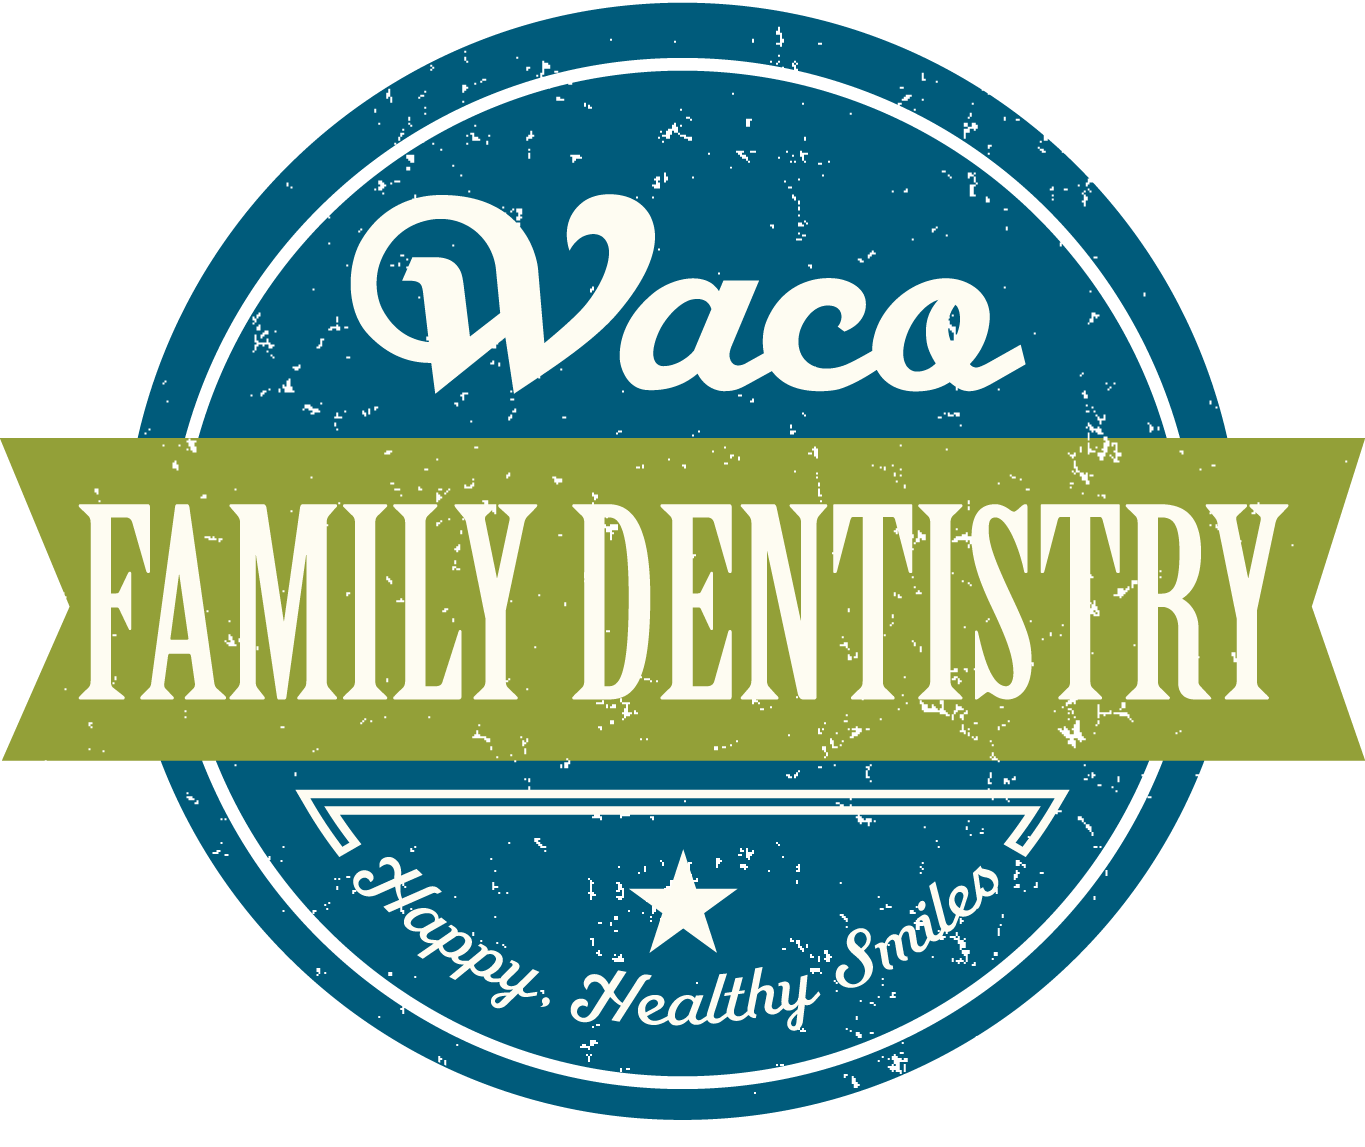 Best Dentist in Waco TX - Waco Family Dentistry